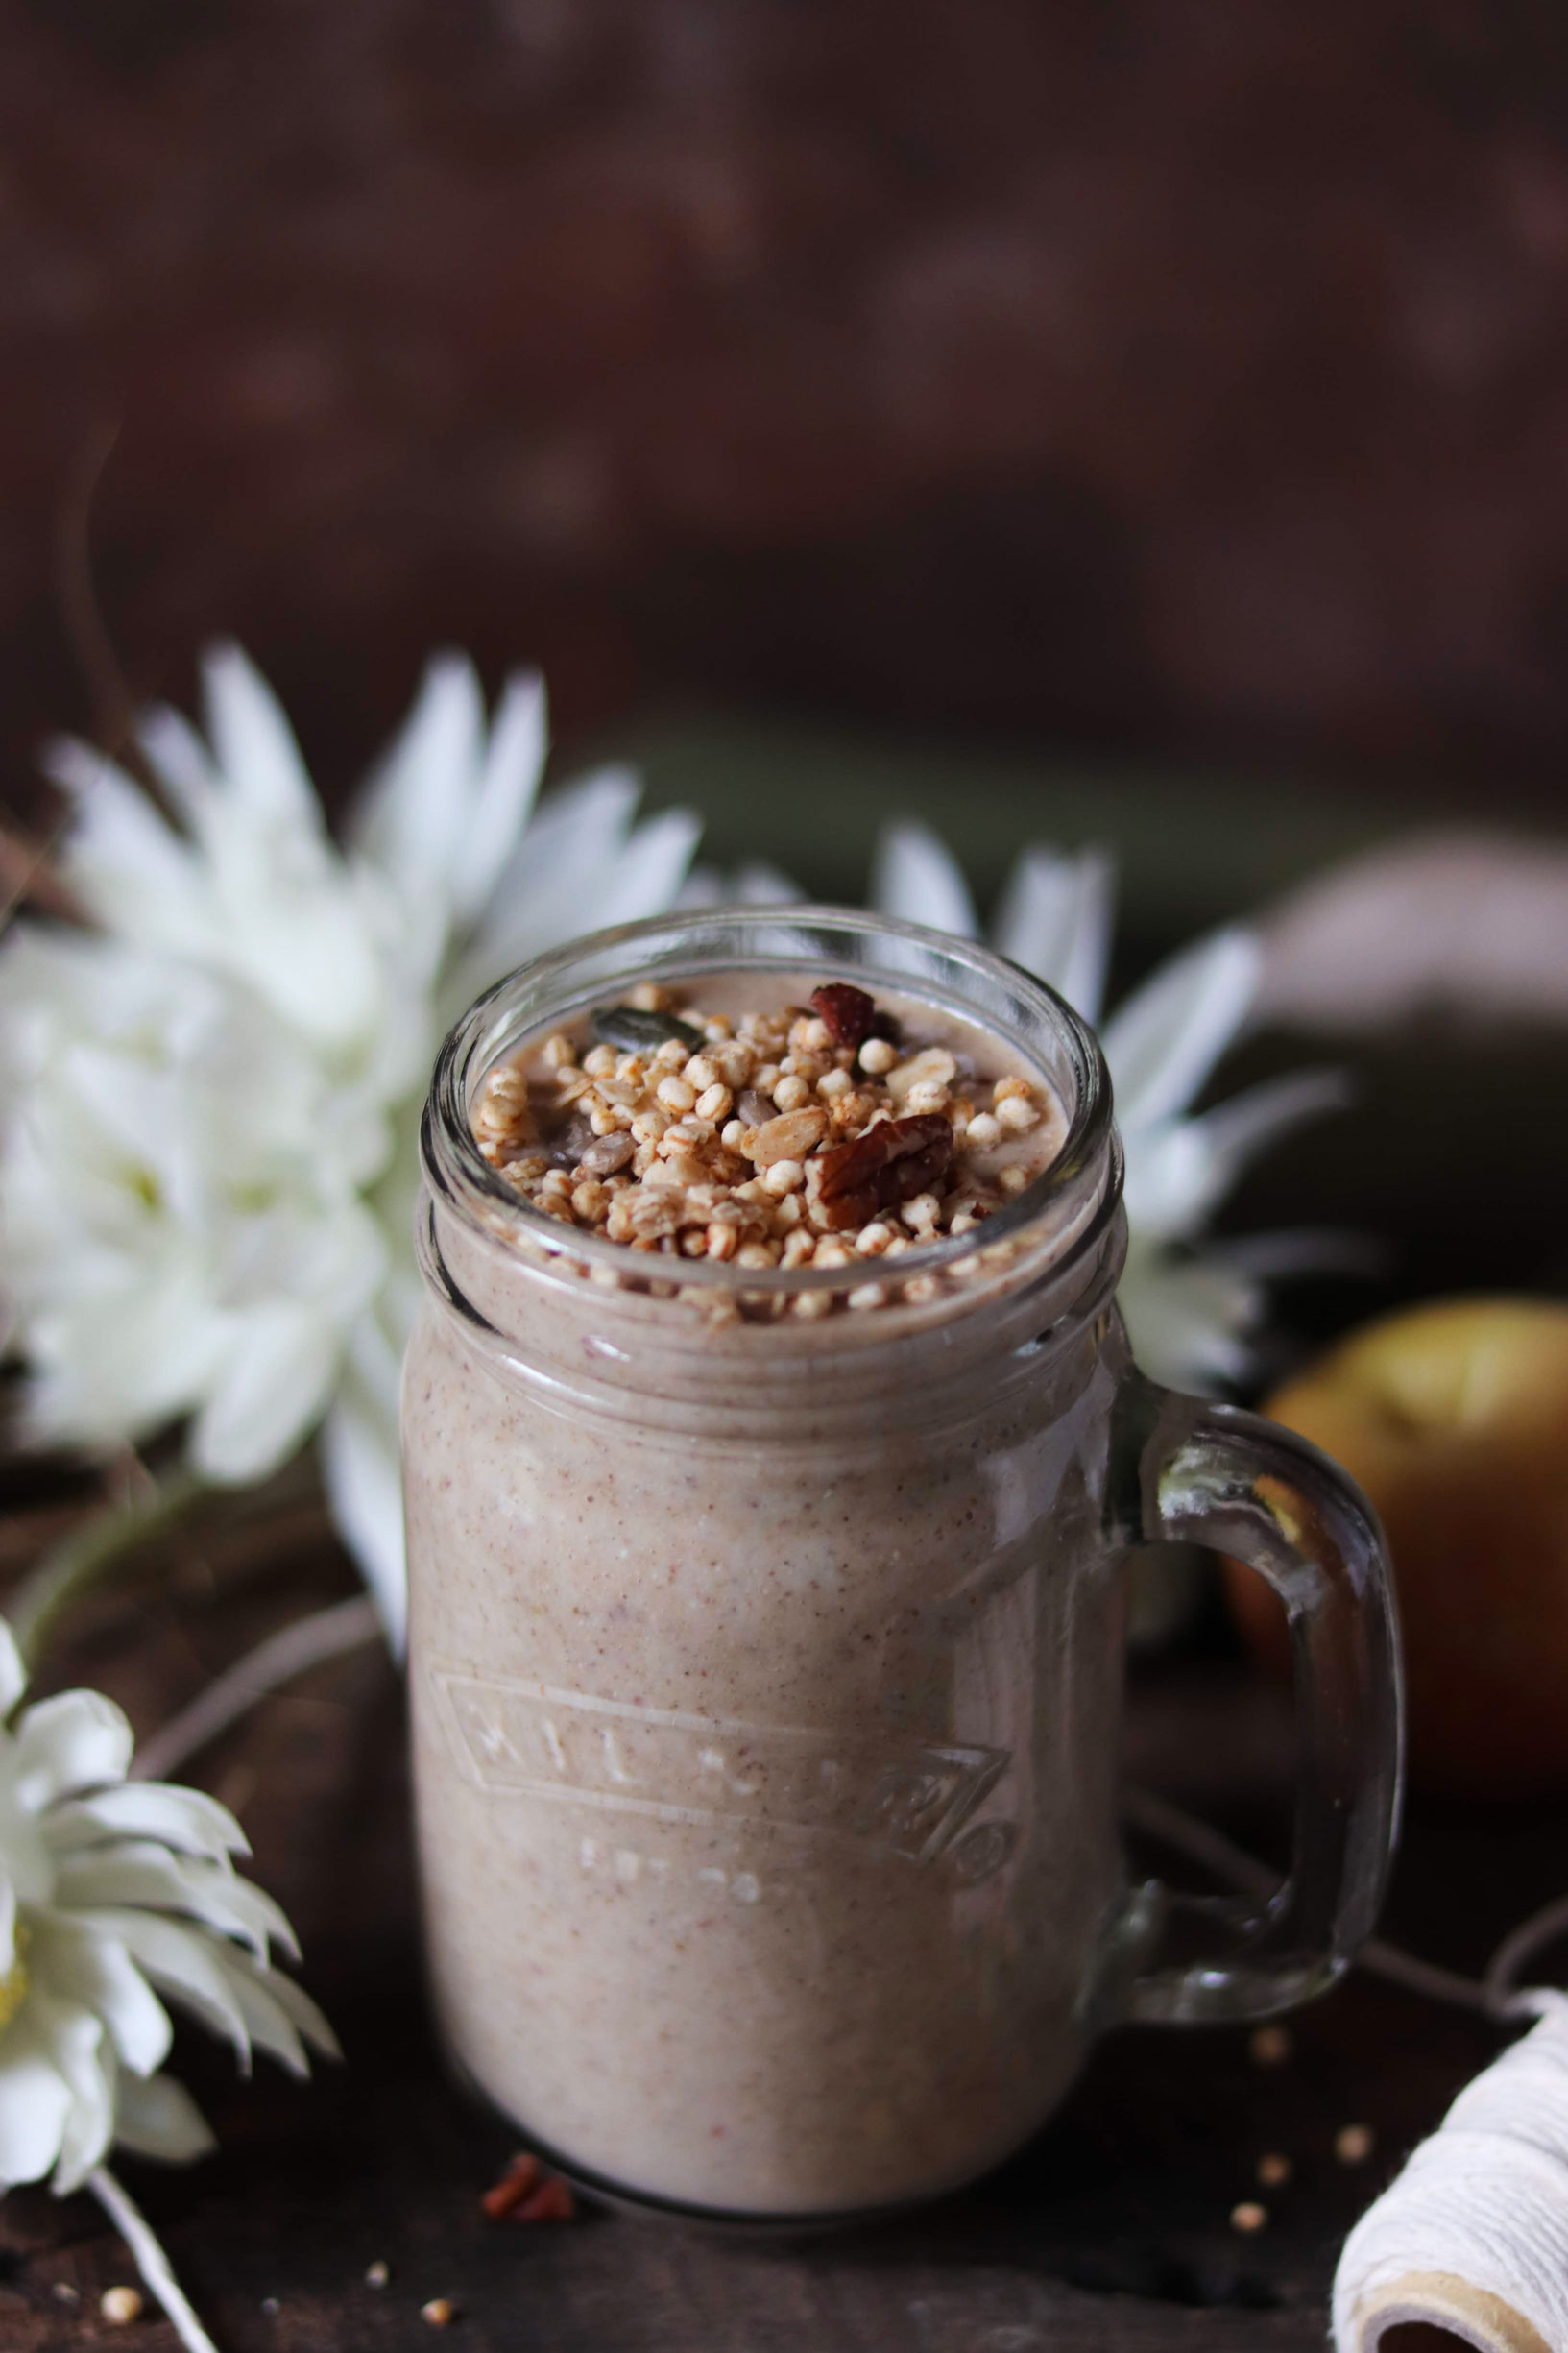 Apple and cinnamon smoothie